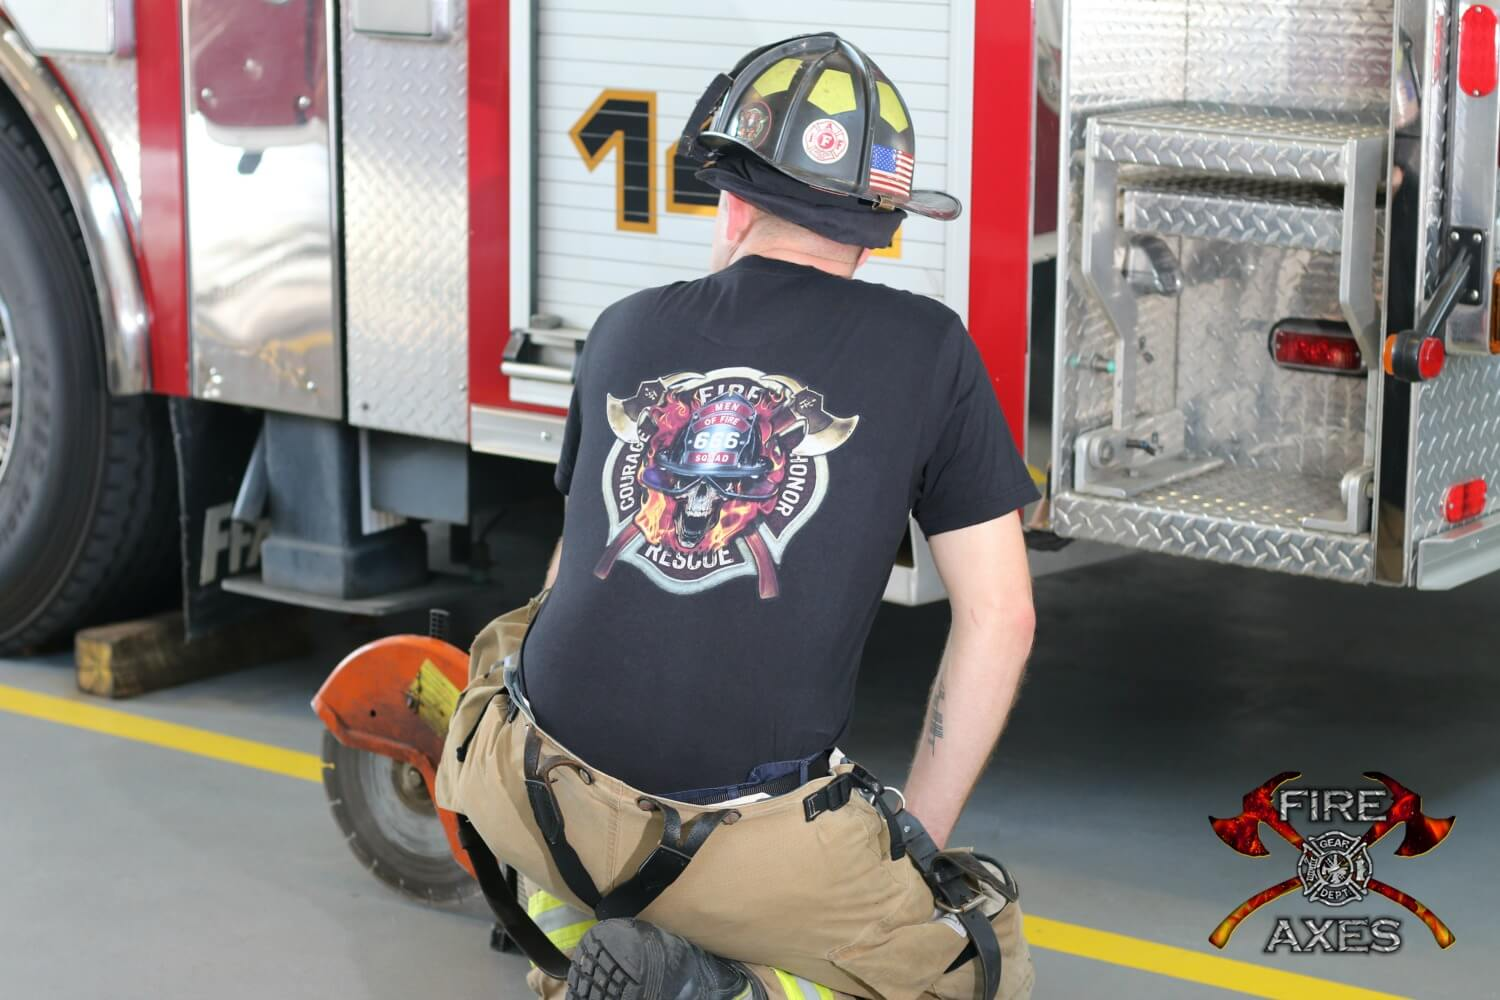 Top 10 Gifts For Firefighters Under $25